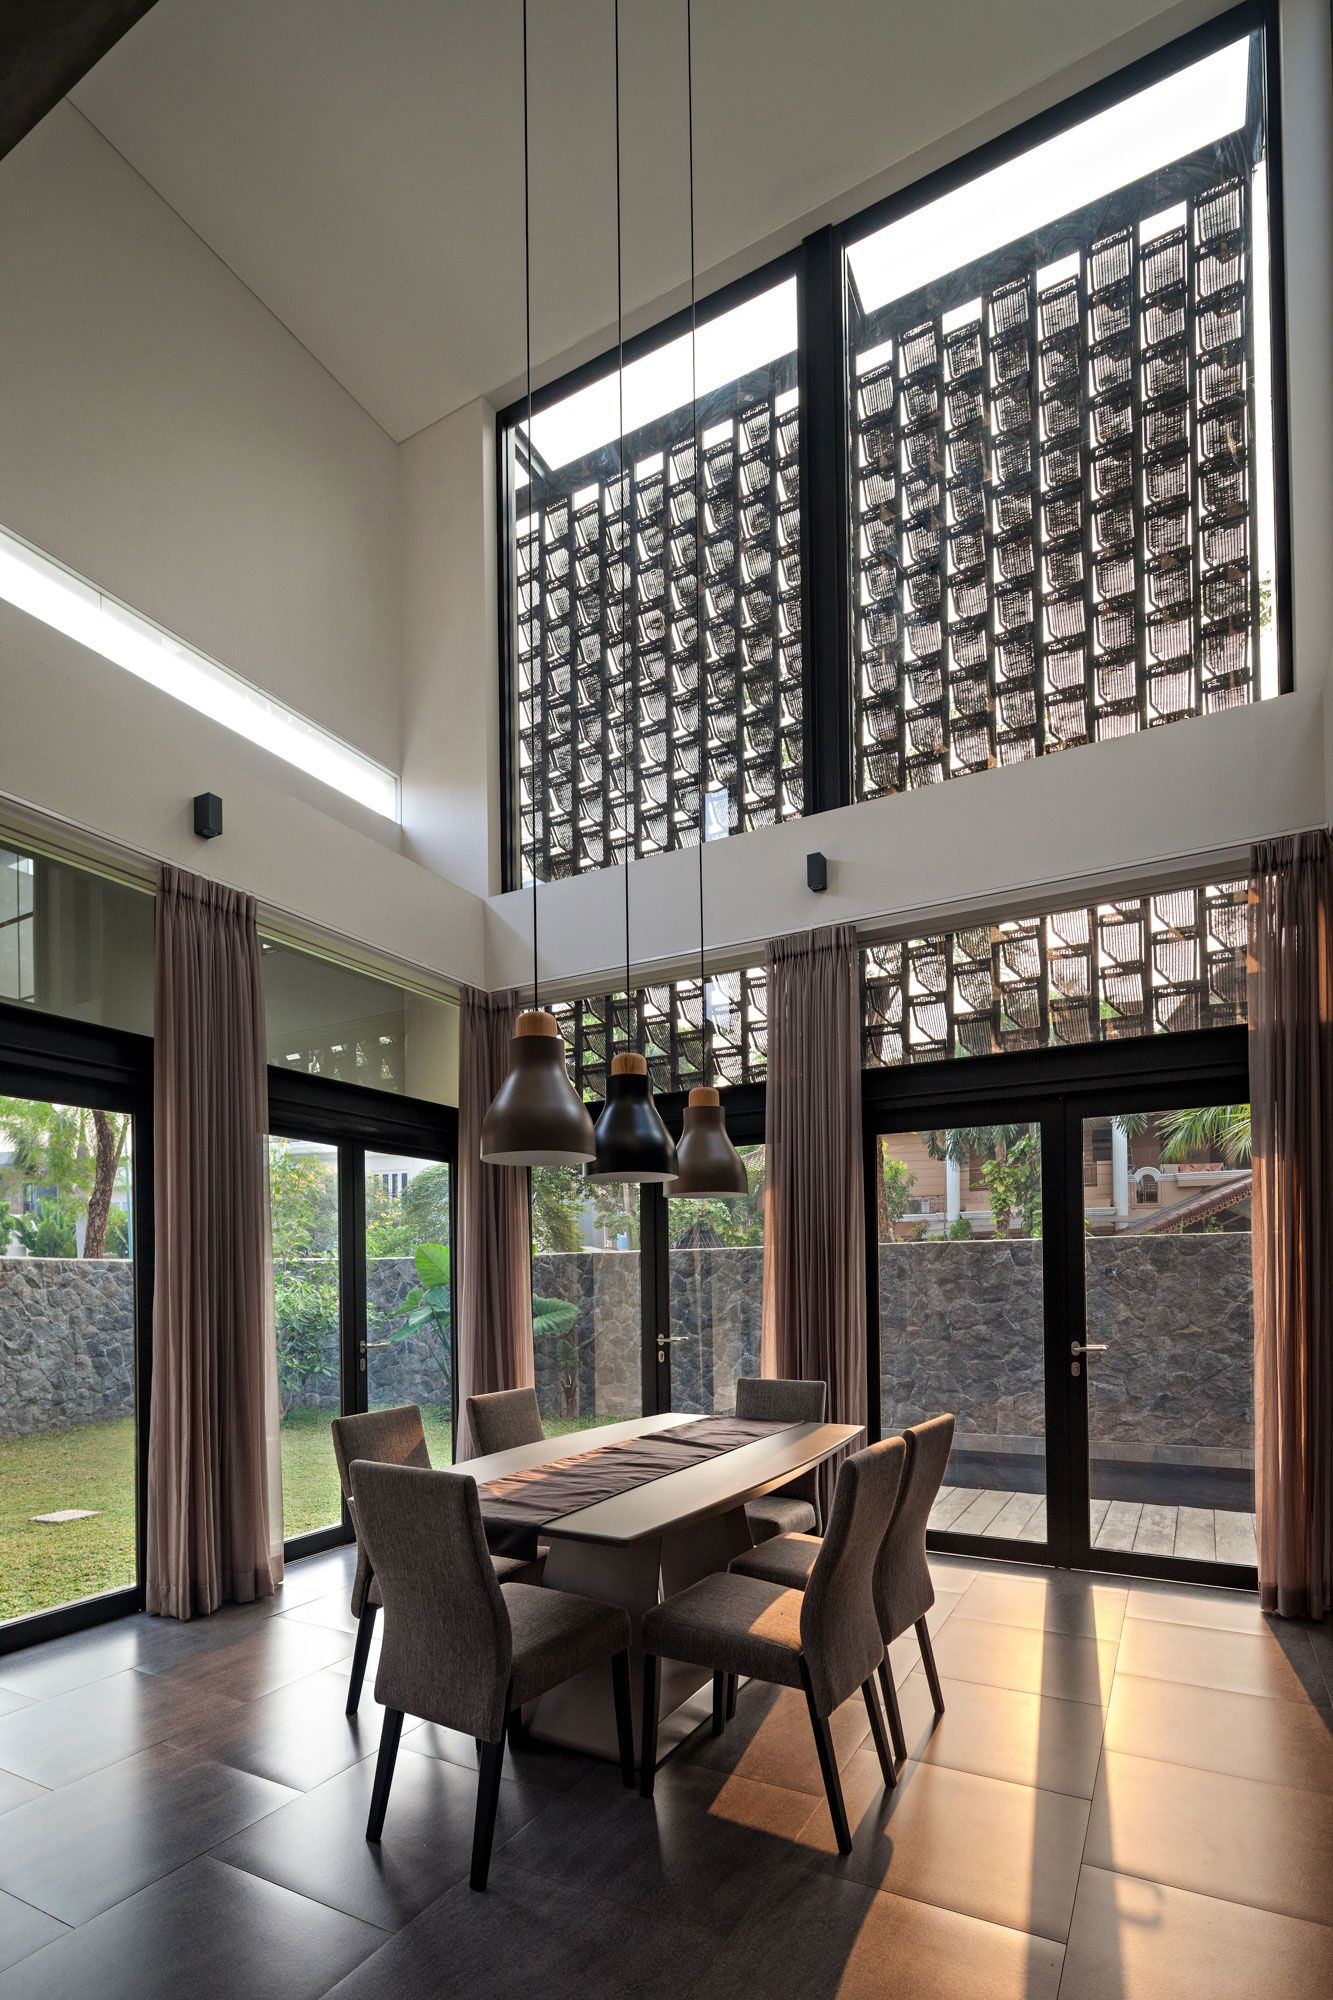 Dining room of happy house design by modernspace yanto for House interior design jakarta